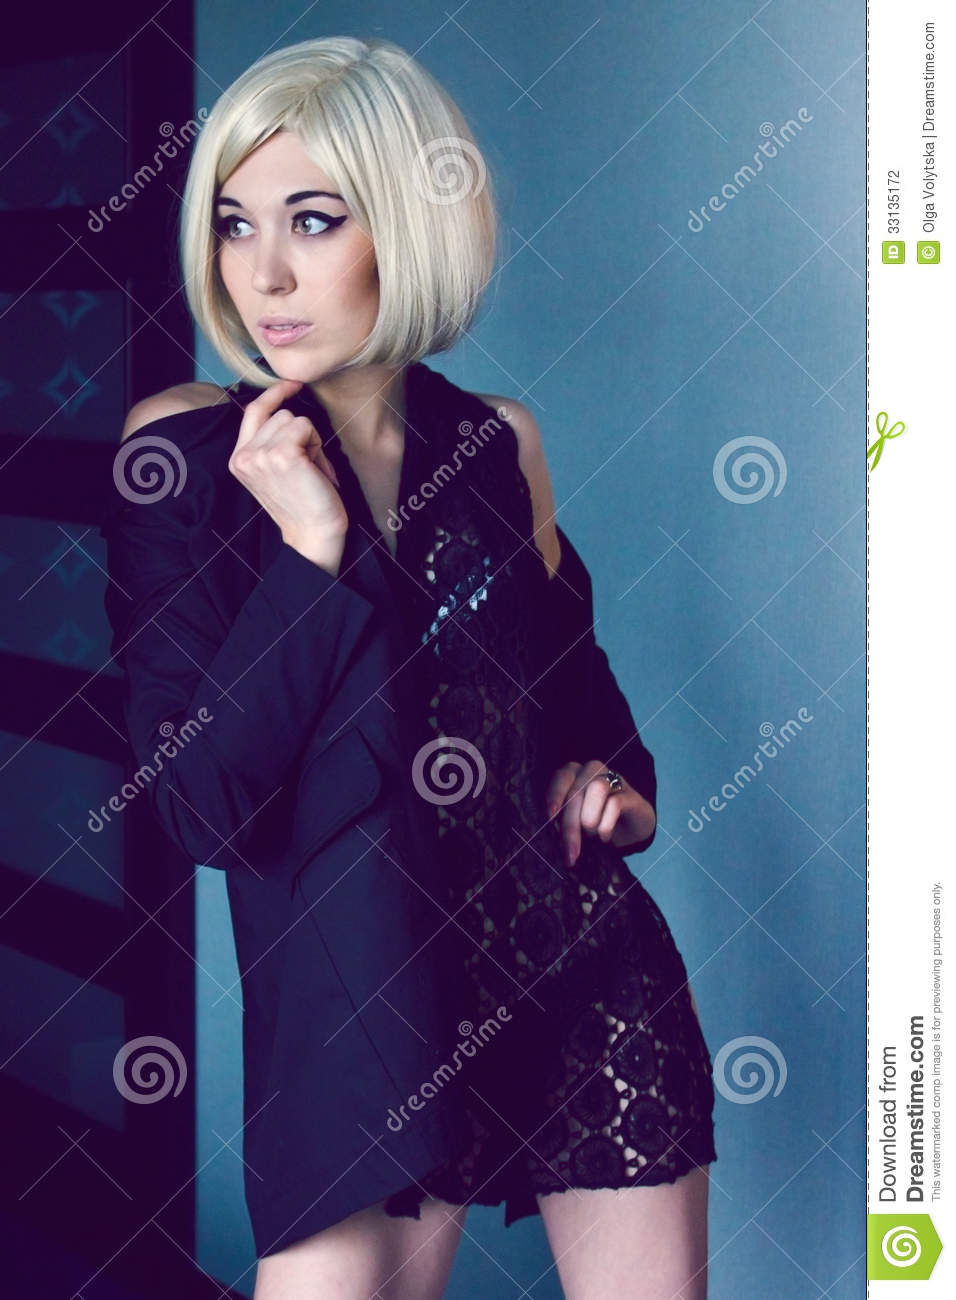 Mysterious young woman in jacket and lace scarf